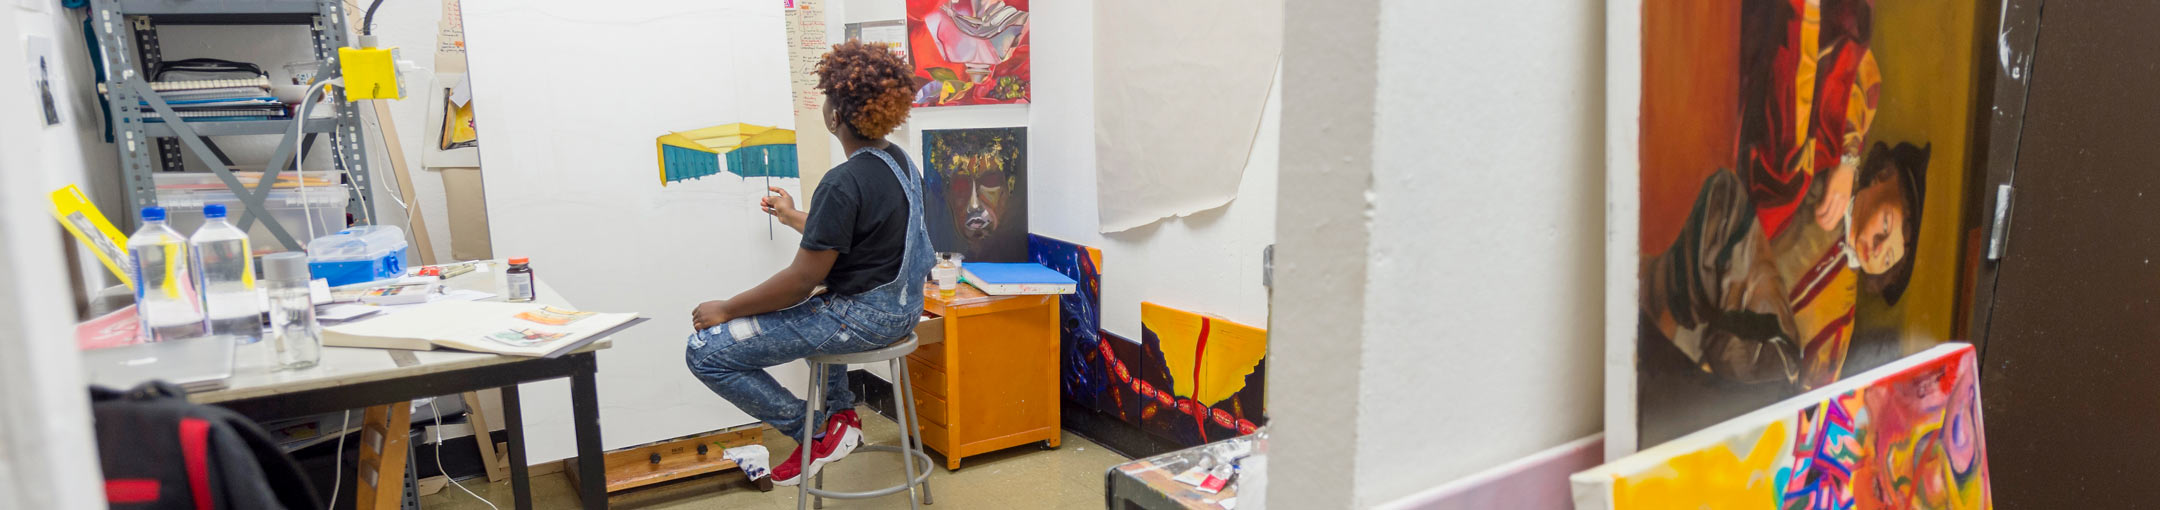 In a studio space, a student works on an architectural painting